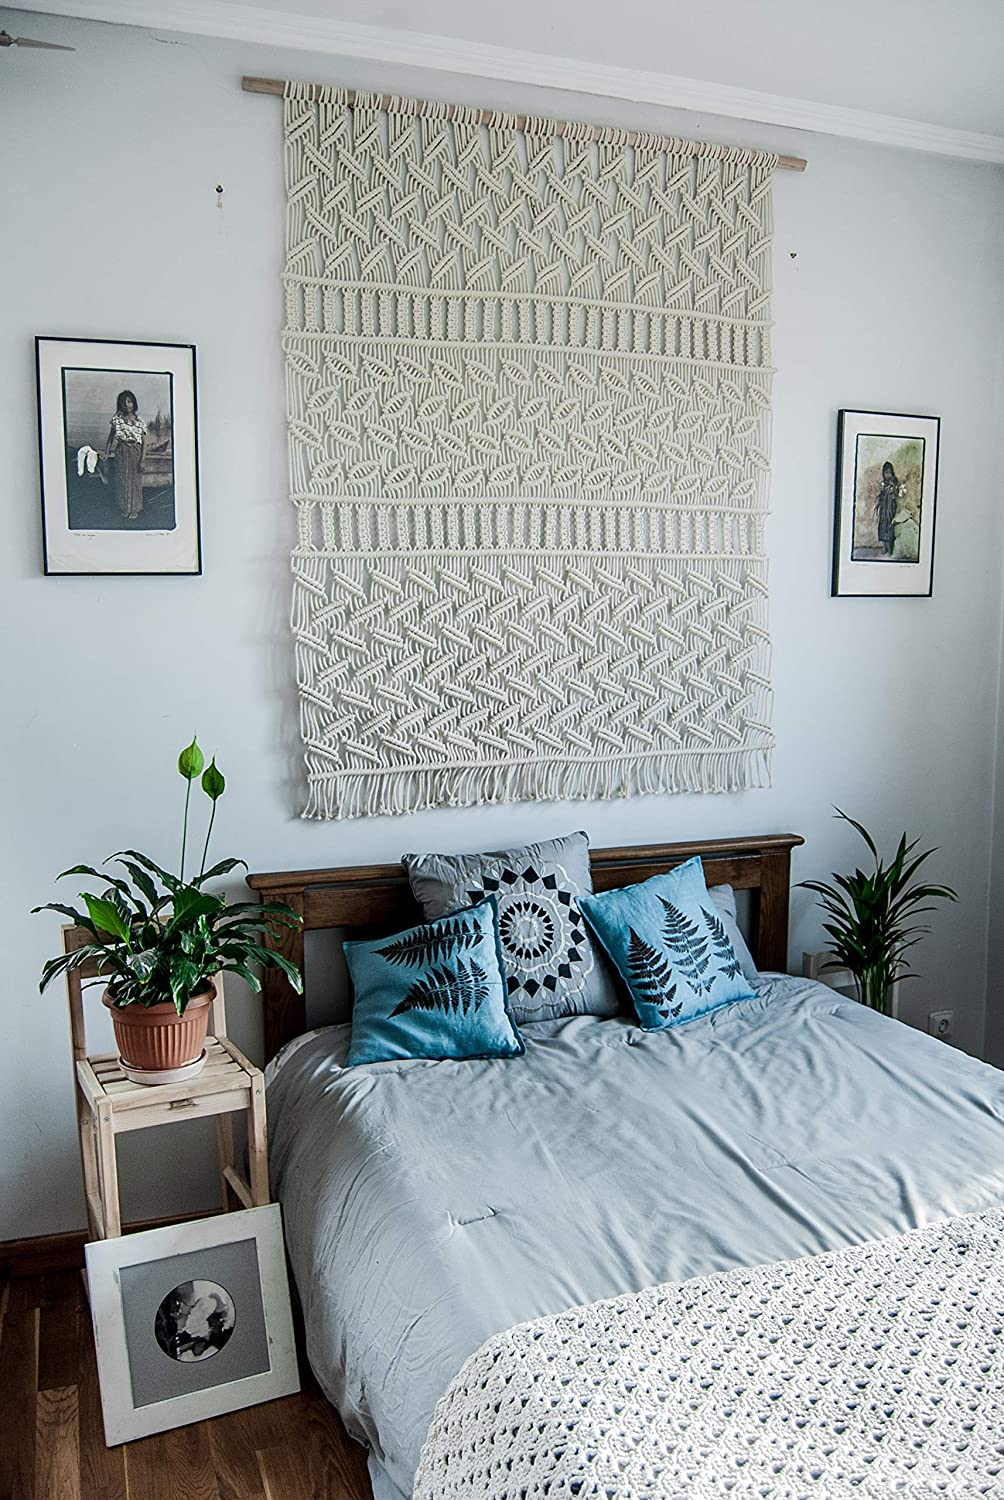 Amazon.com: Bedroom decor – macrame wall hangings, wall ...